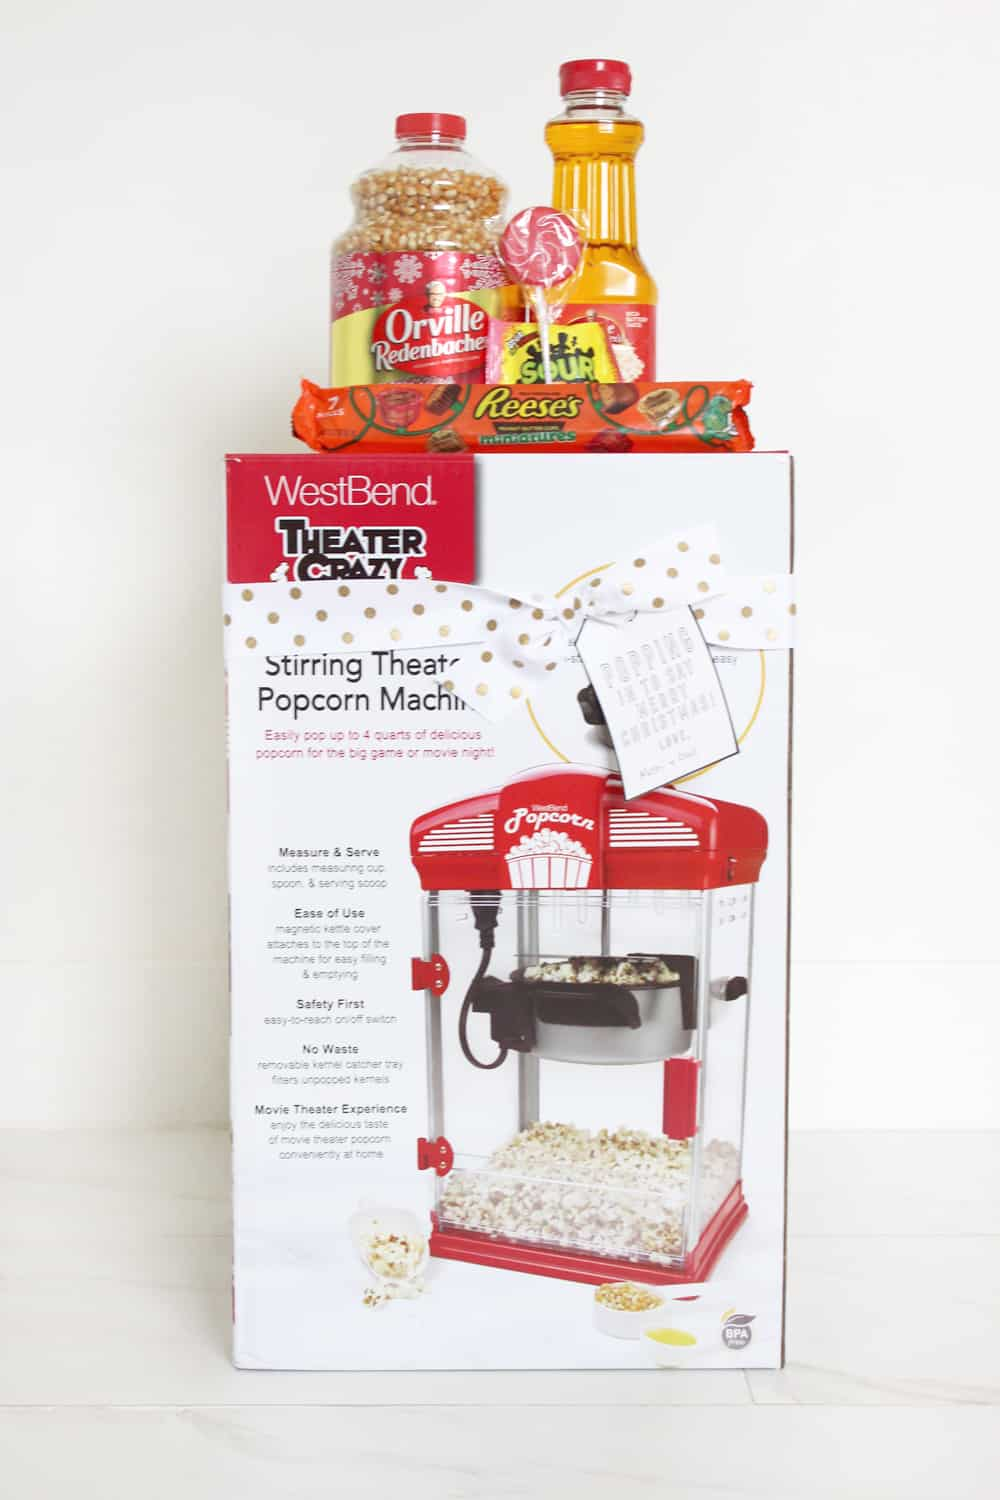 Movie theater popcorn maker and snacks! Such a fun gift idea!